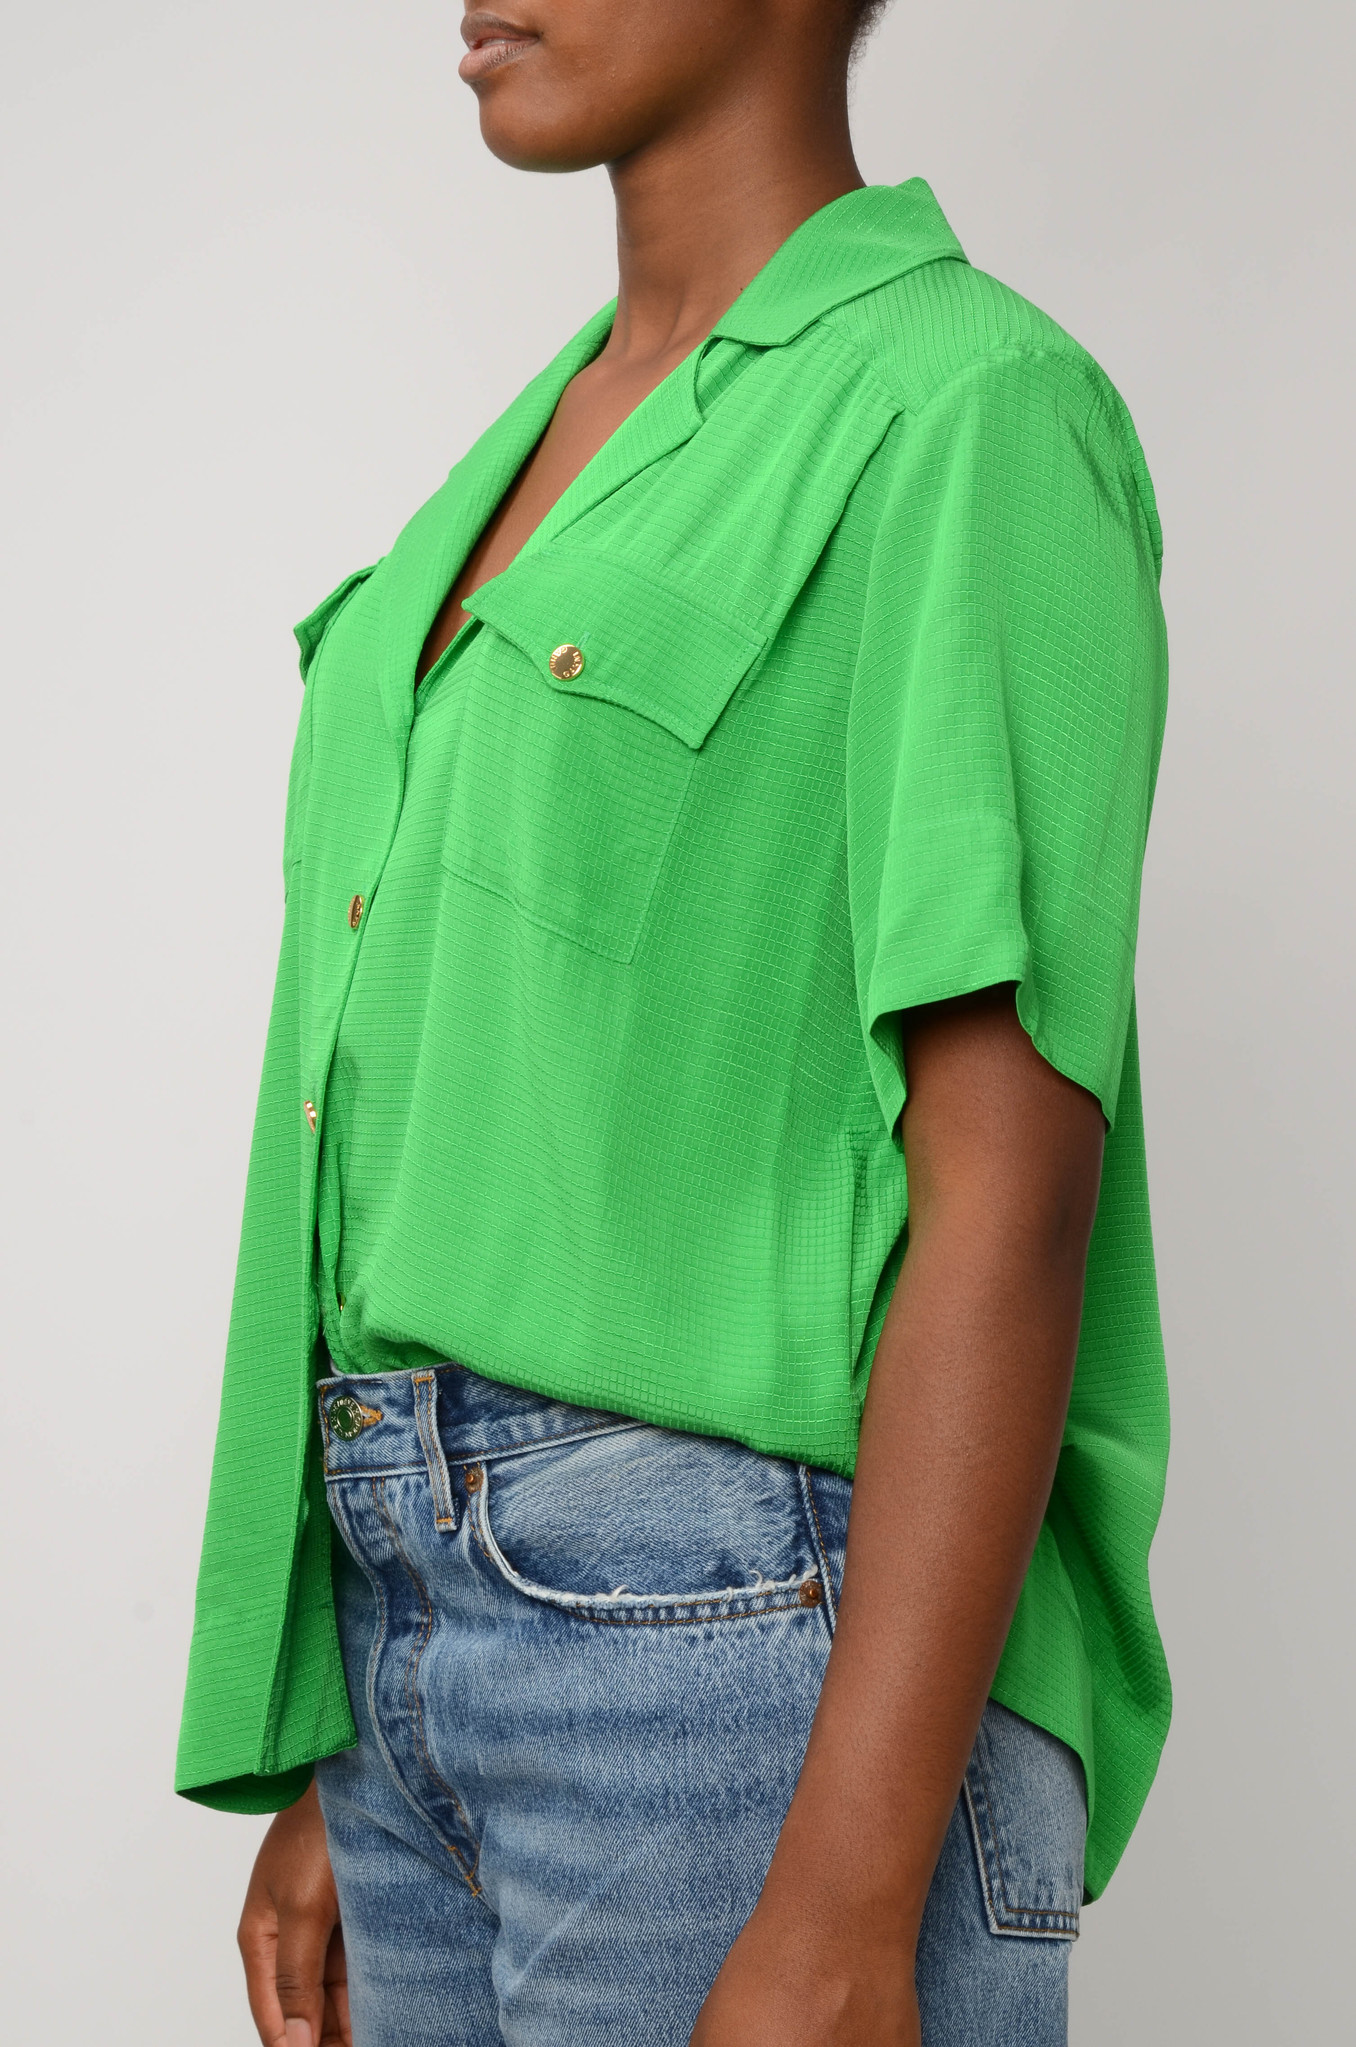 RIPSTOP SHIRT IN KELLY GREEN-3